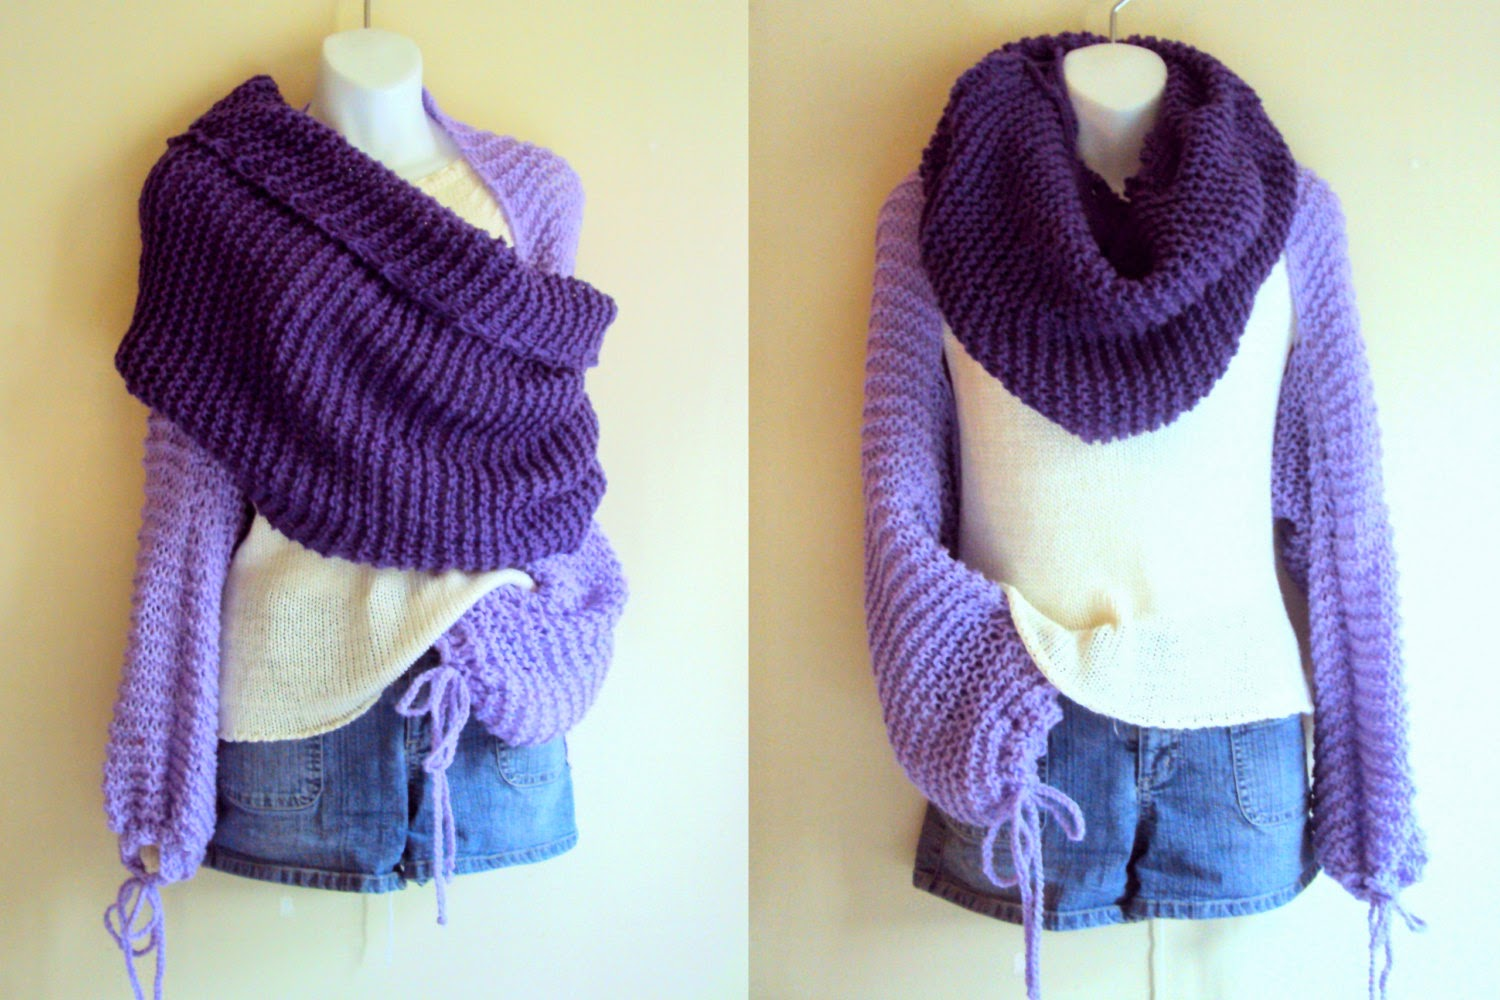 Grahams Bazaar - Knit and Crochet Touches by Seb : Knit Shrug Tube Scarf Shaw...